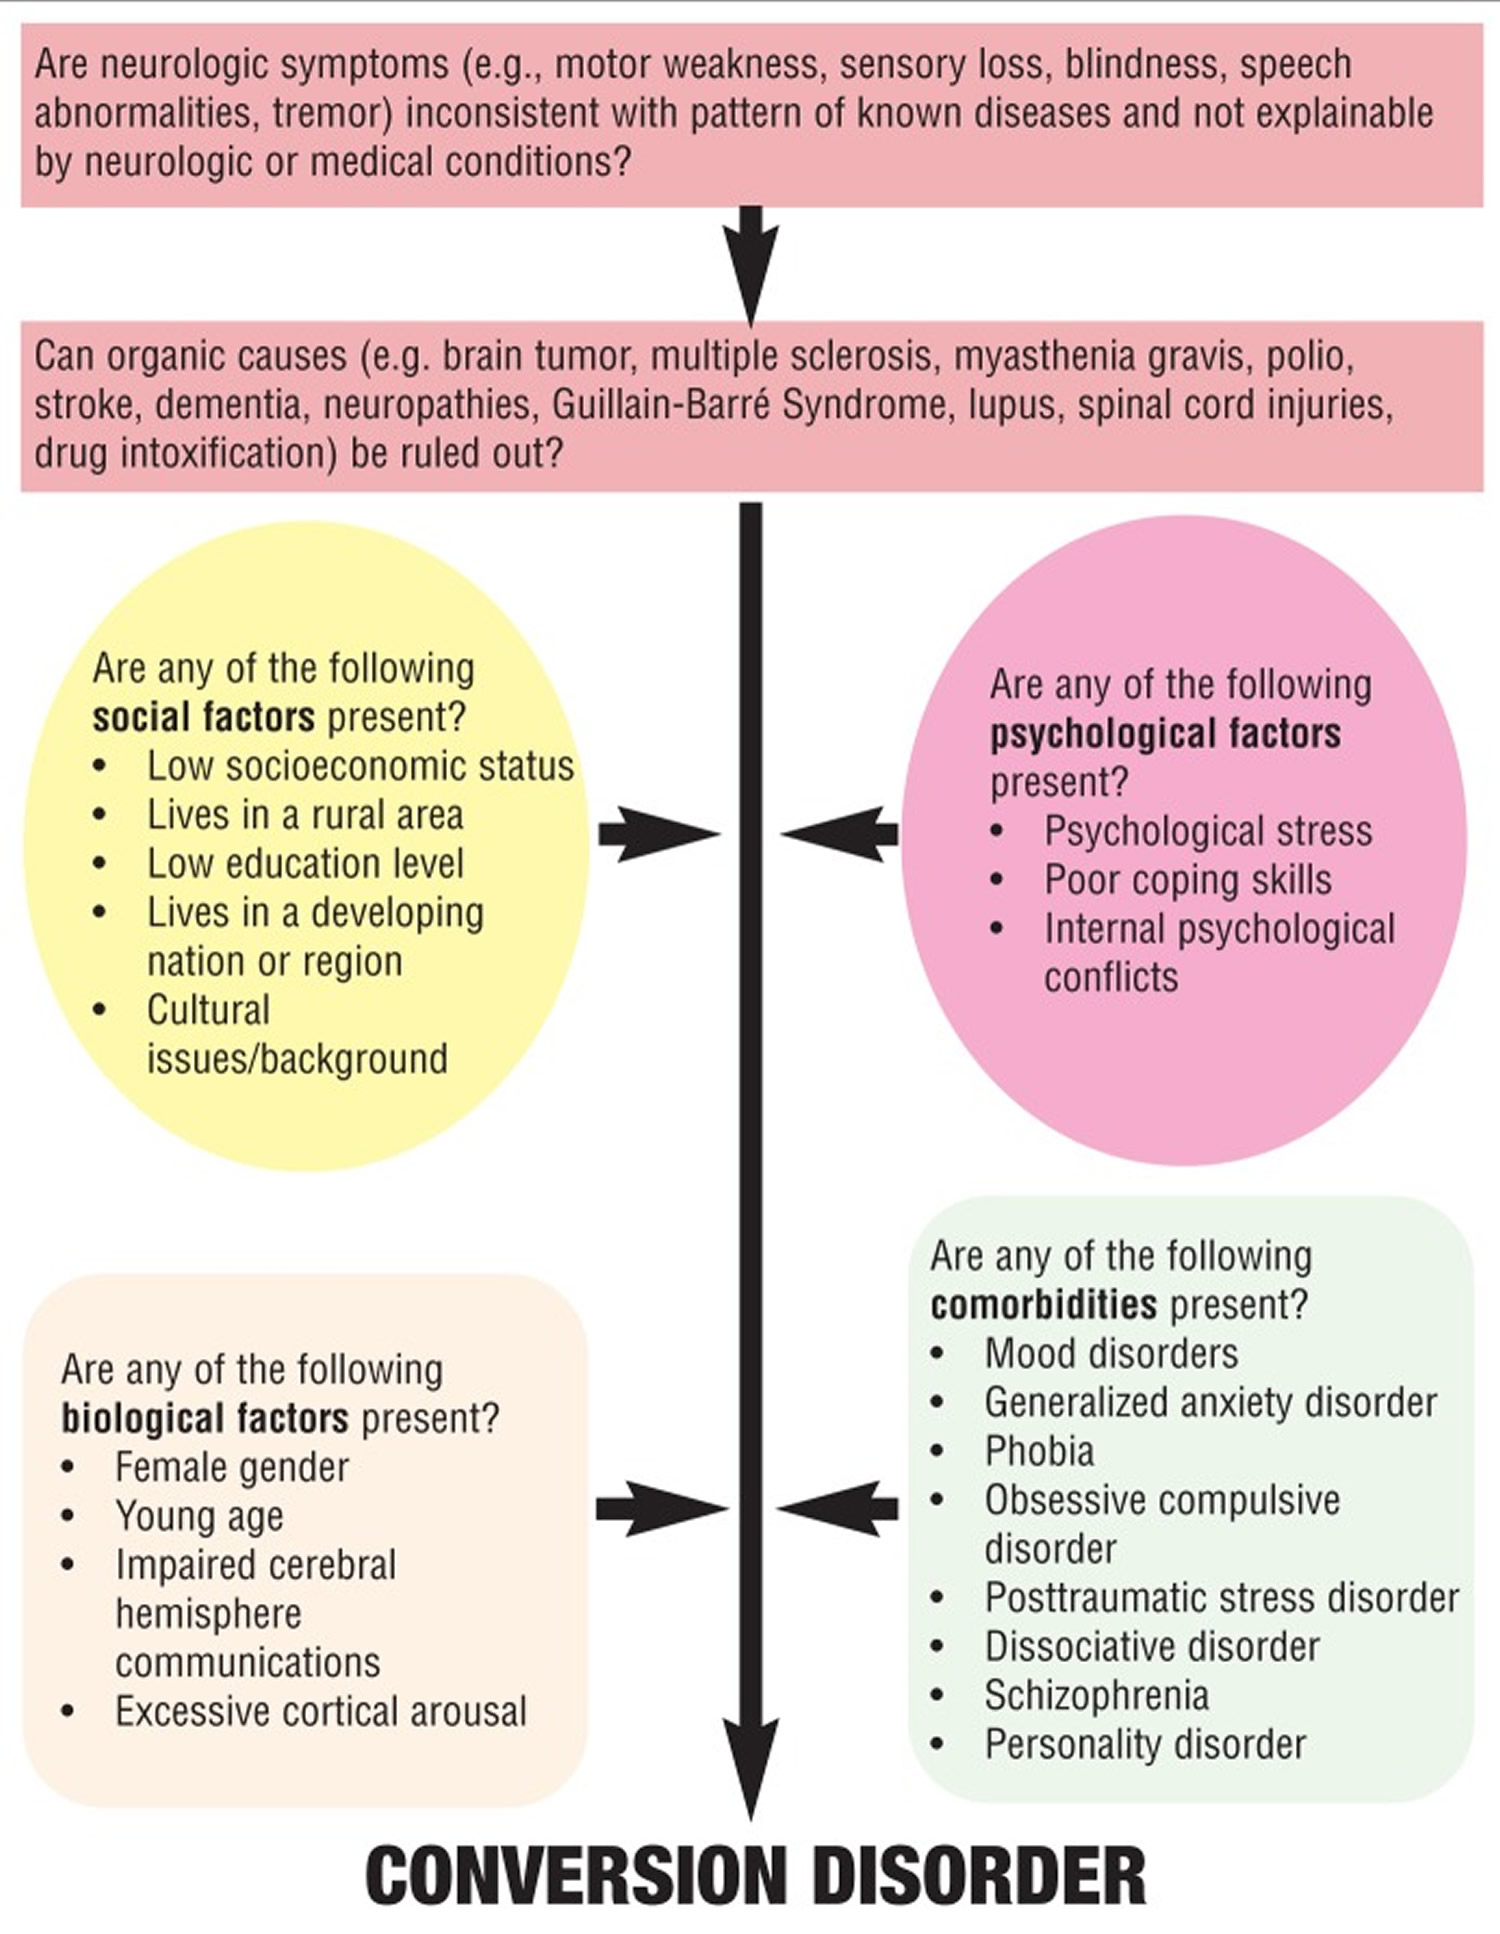 conversion disorder - causes, symptoms, criteria, treatment